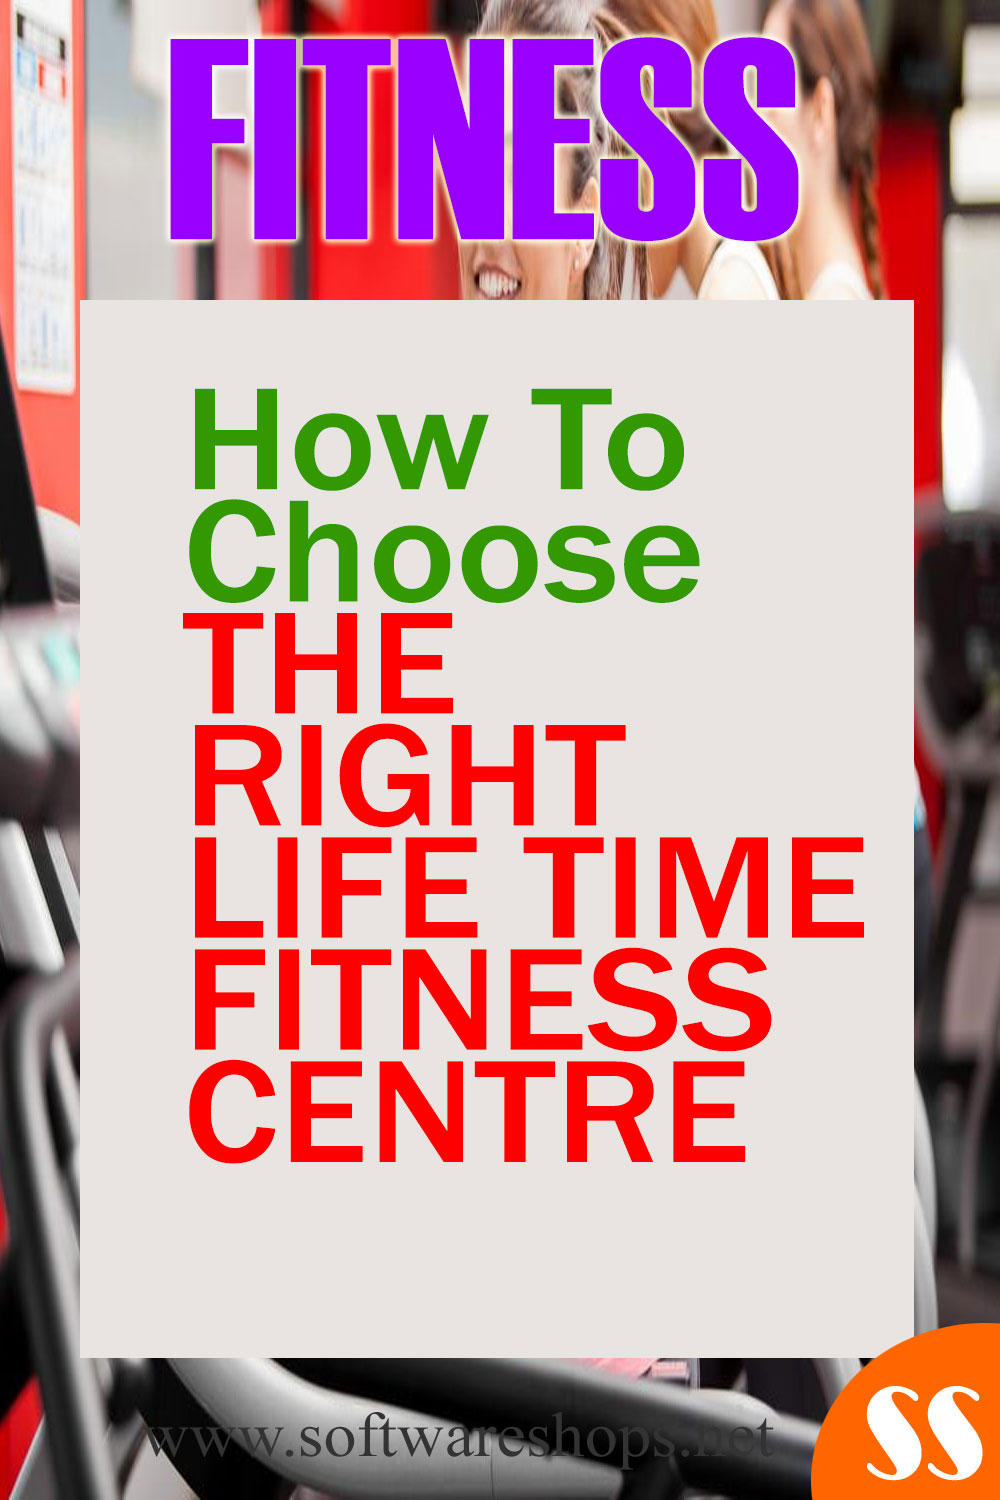 How To Choose The Right Lifetime Fitness Centre